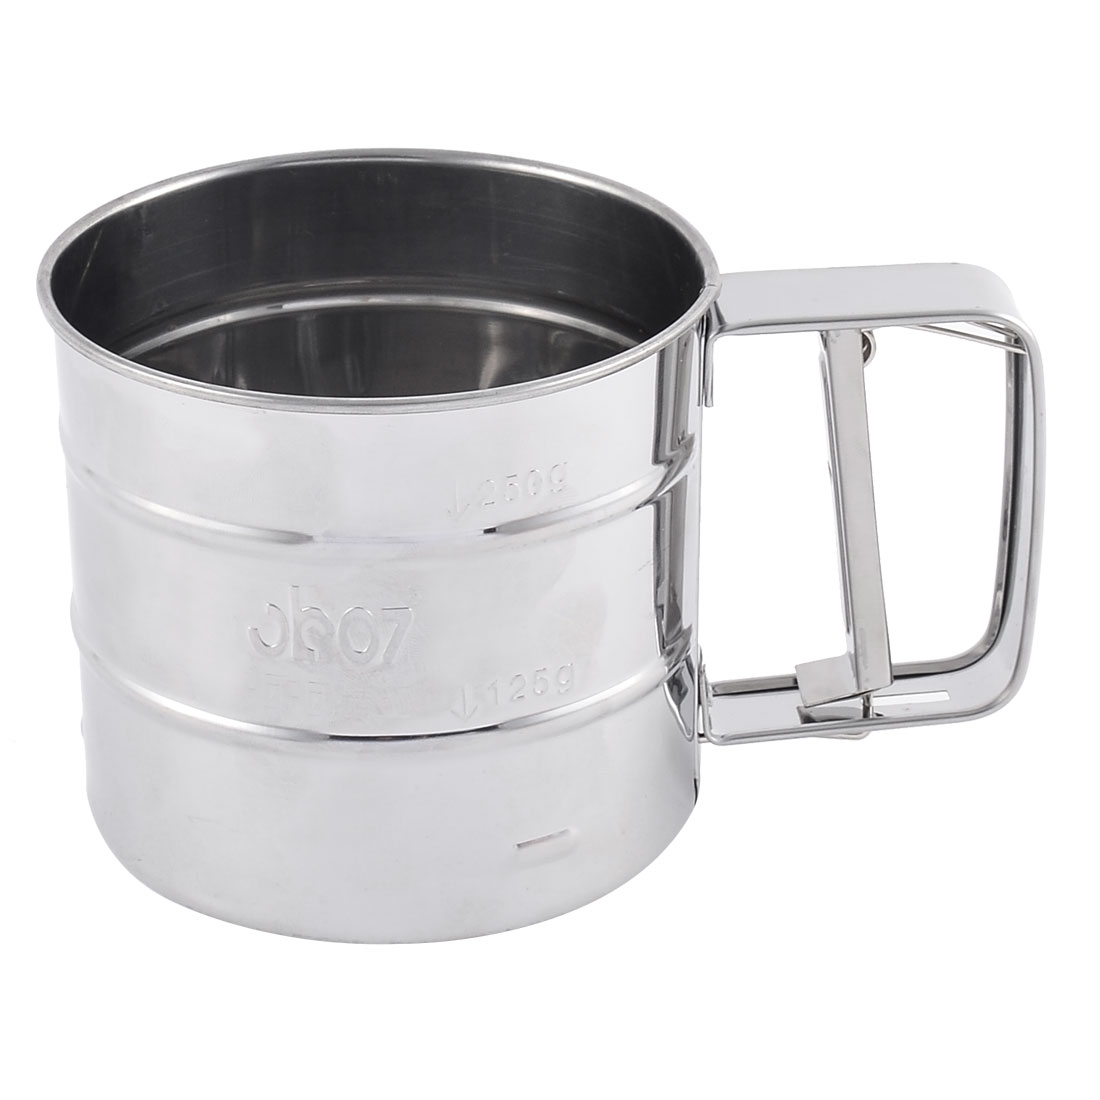 Home Kitchen Baking Stainless Steel Flour Sugar Mesh Sifter Shaker Silver Tone